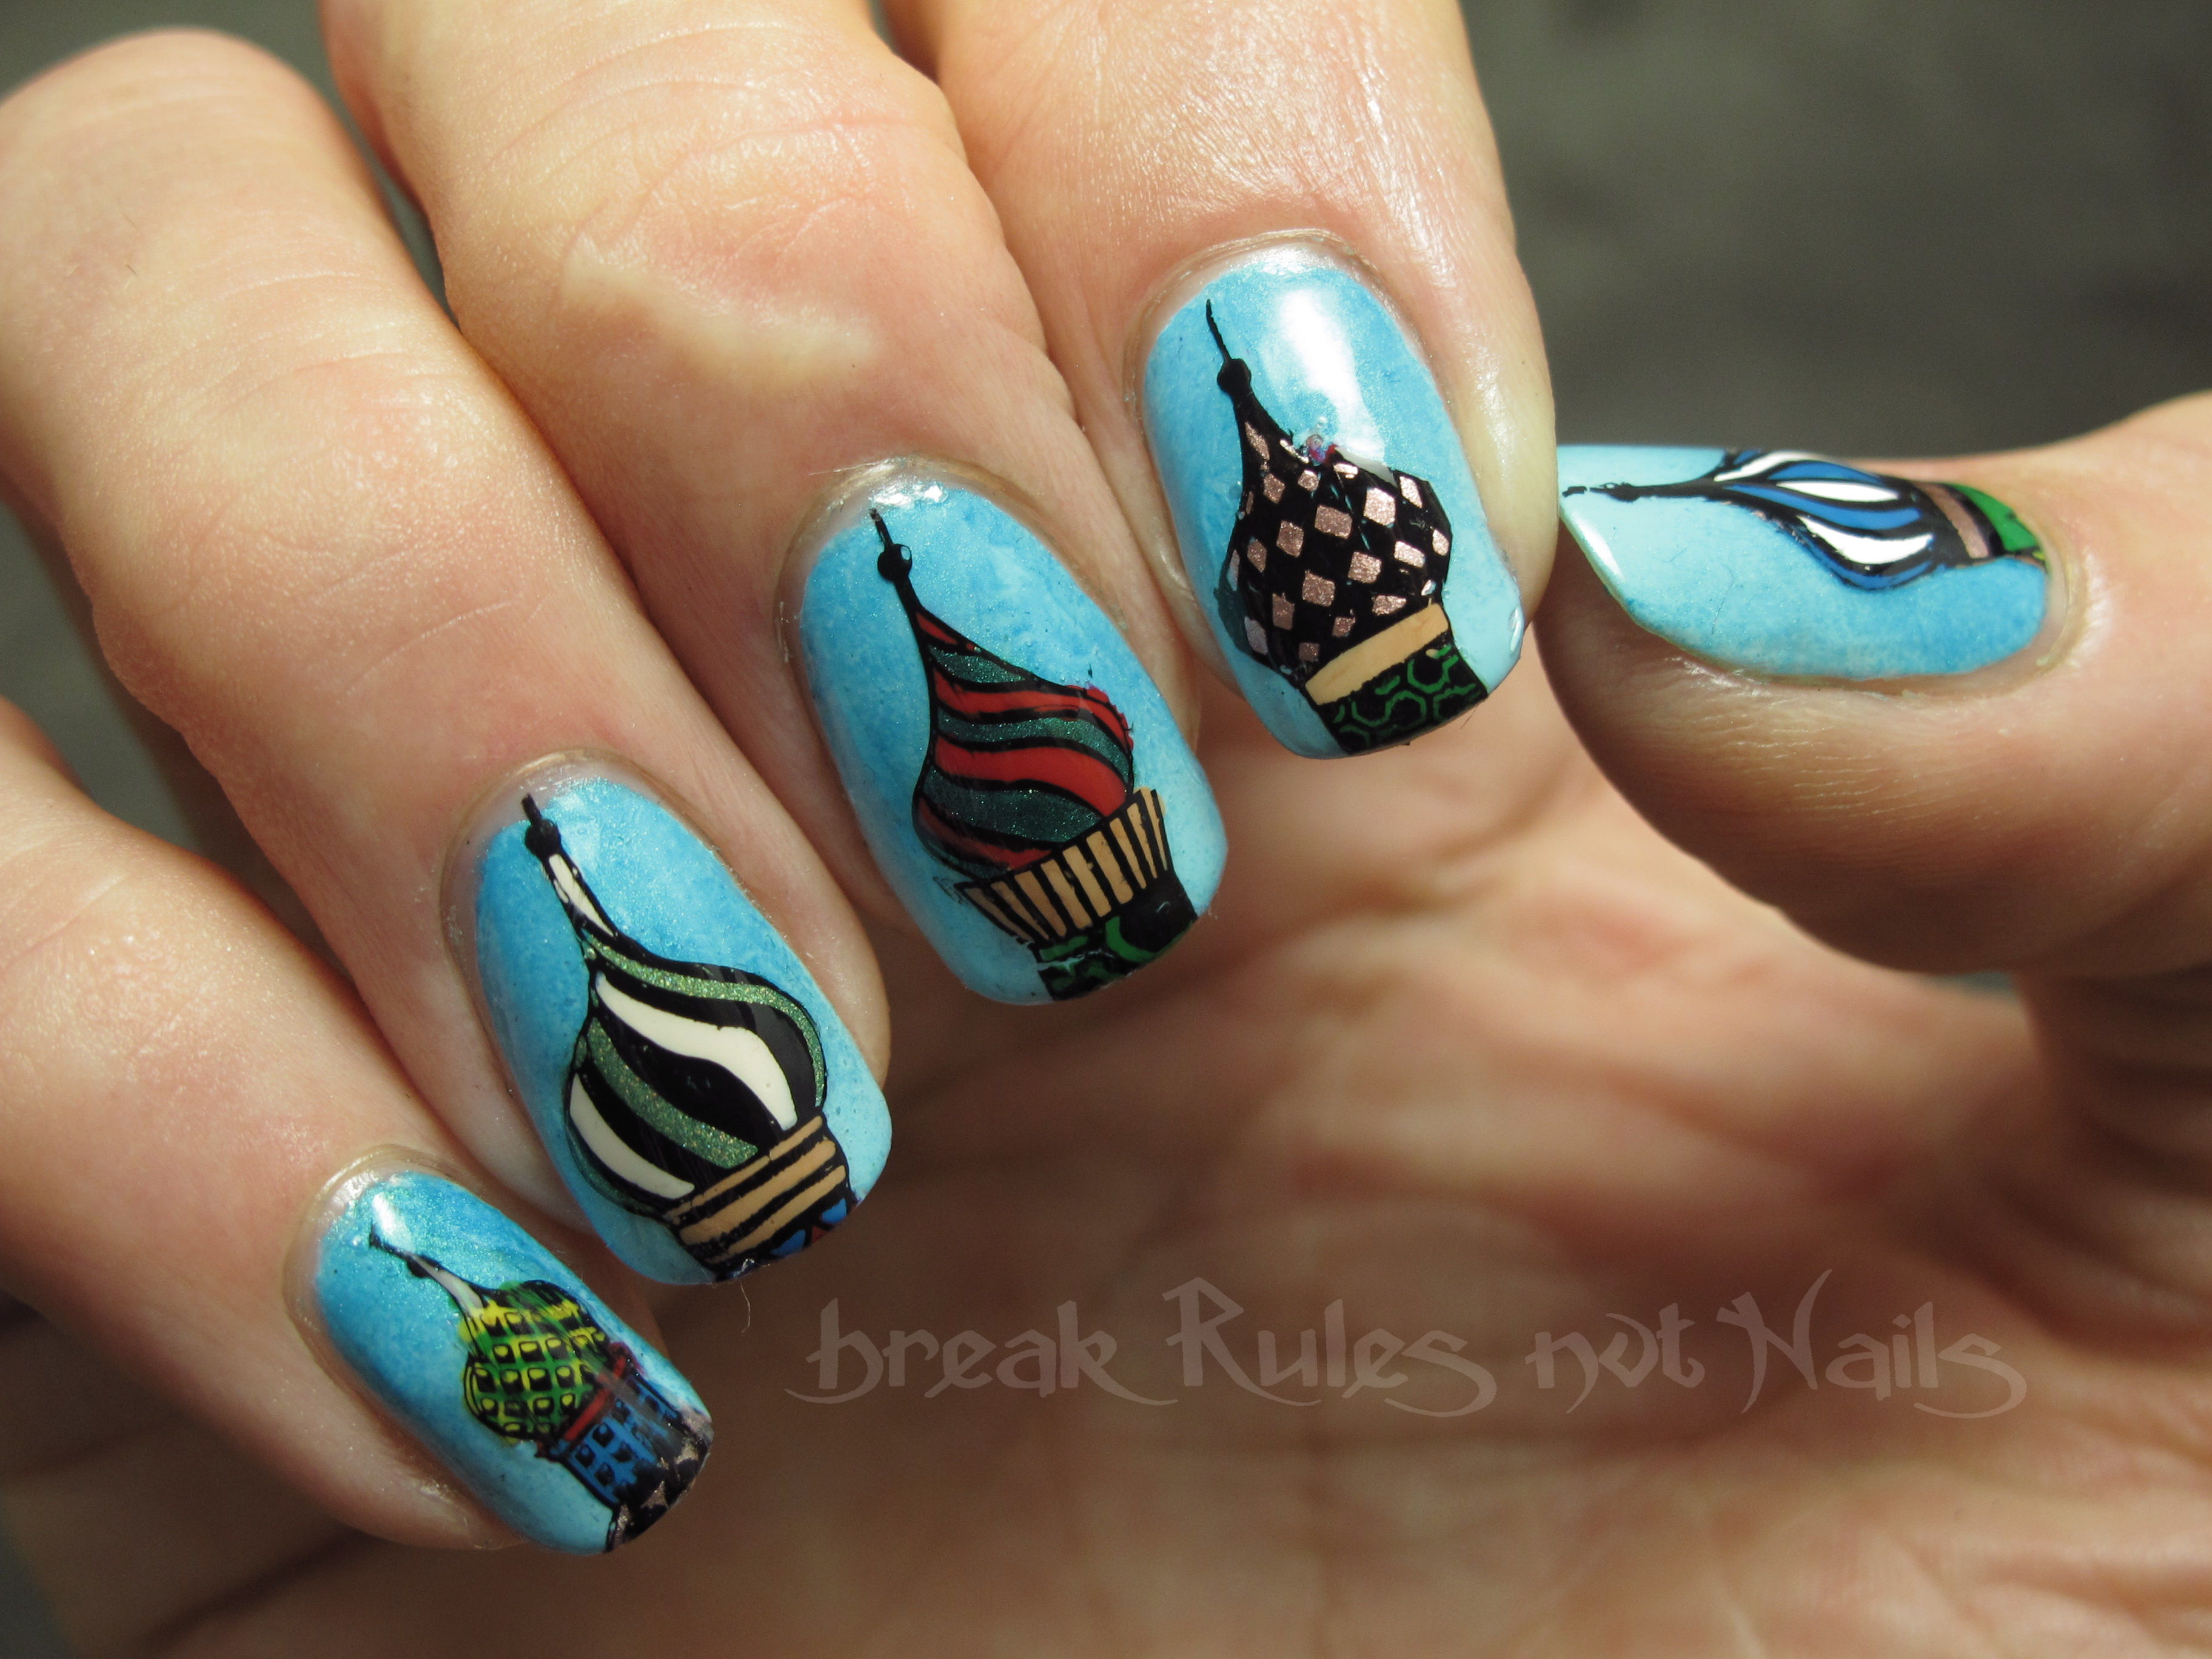 Stamping decal nail art | Break rules, not nails